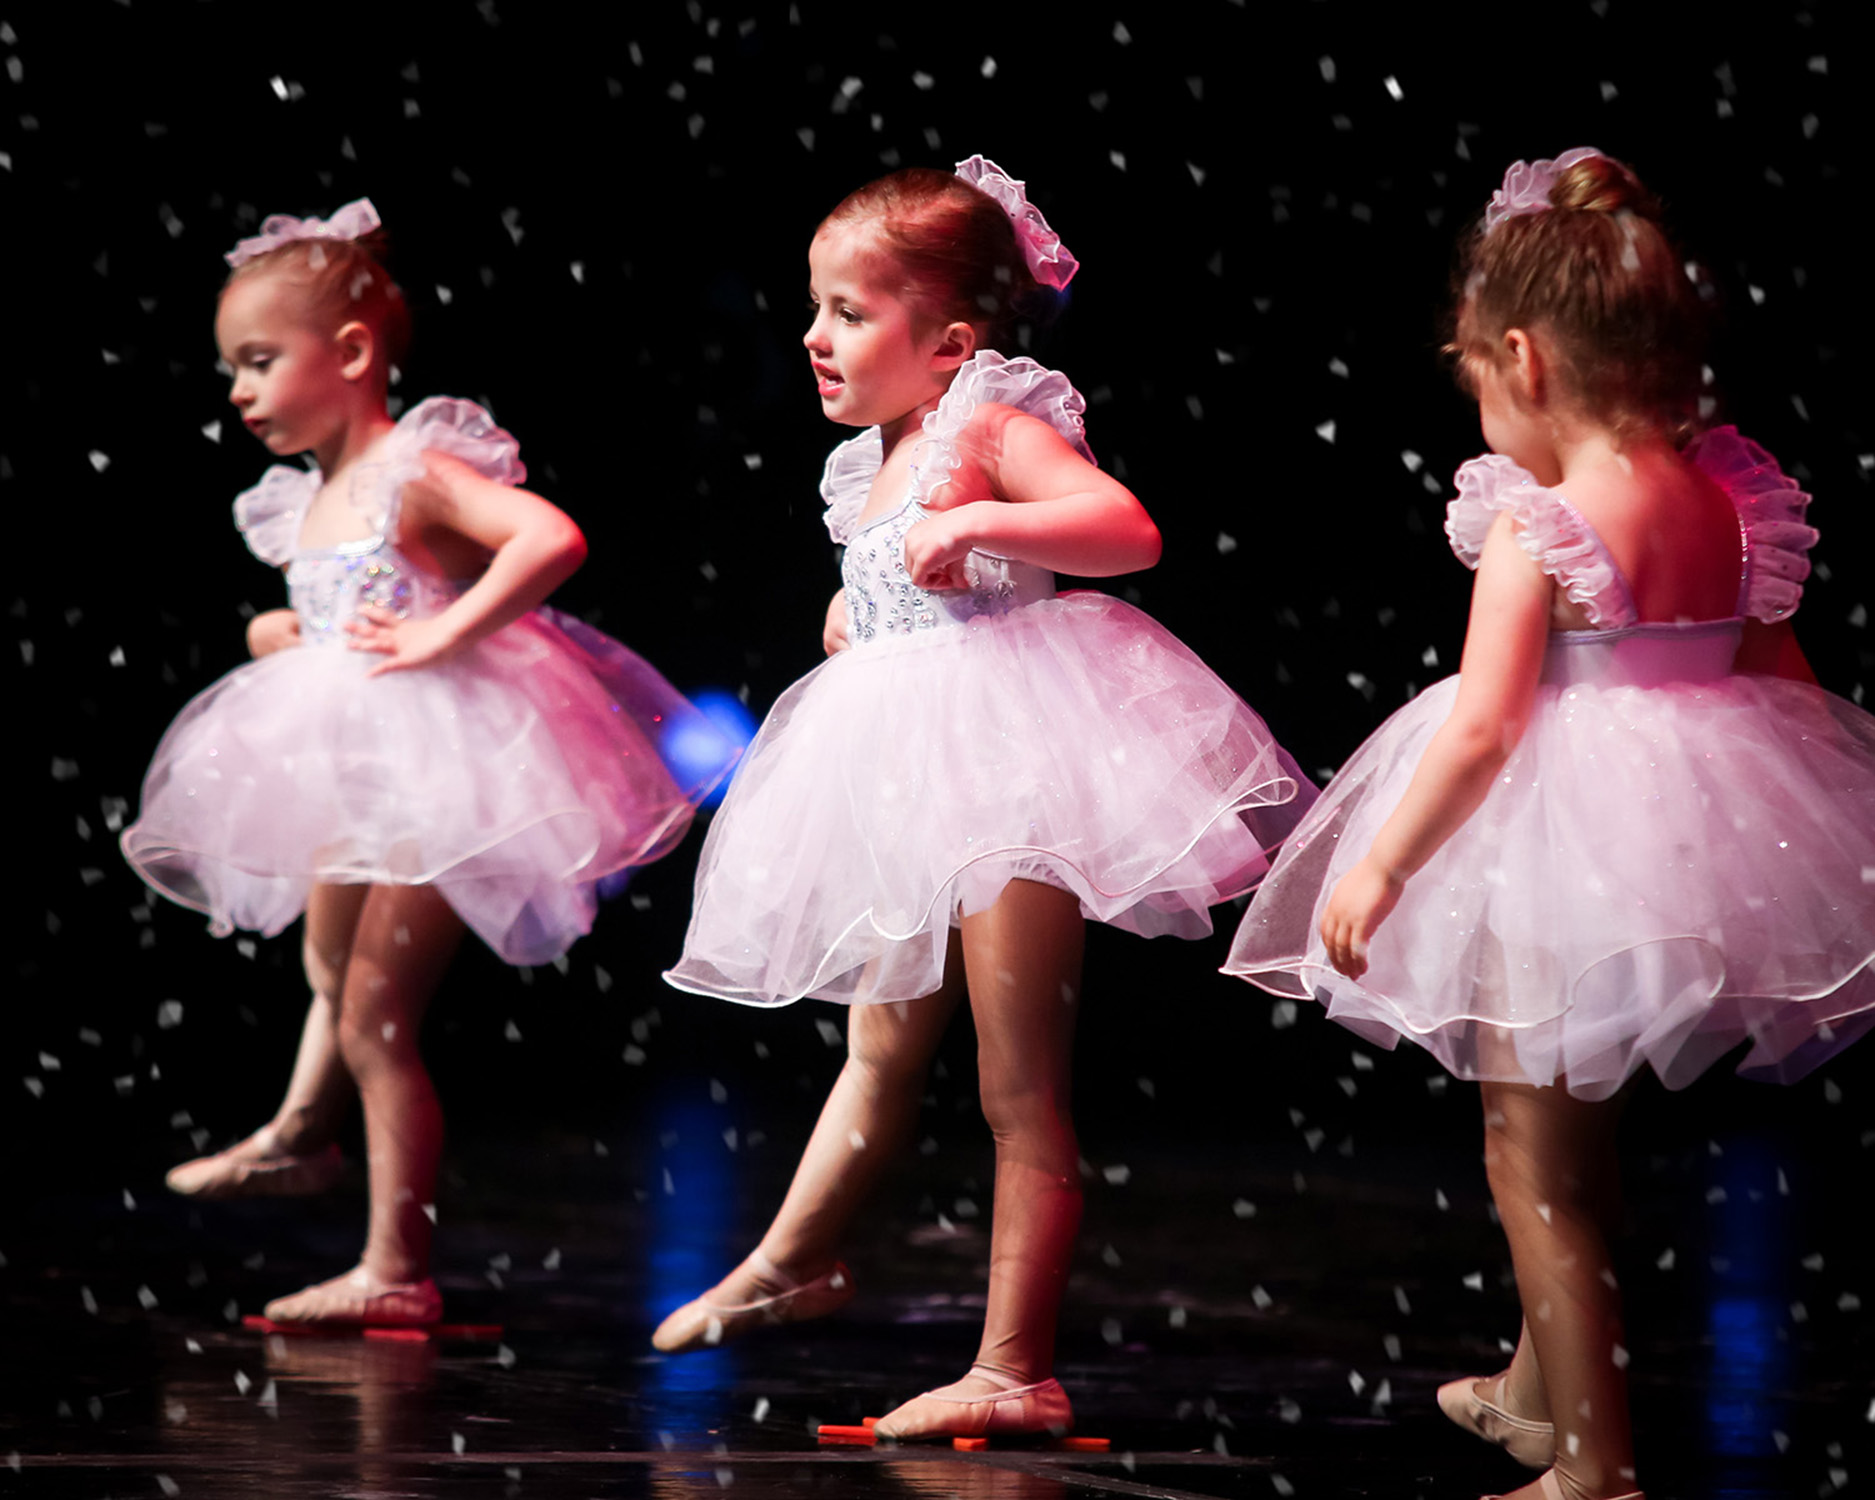 inspire may recital - May 14, 15 & 16, 2020@Marjorie Luke TheatreAnnual recital showcasing our performance classes.Click here to support your dancer or promote your business with an ad in our program.